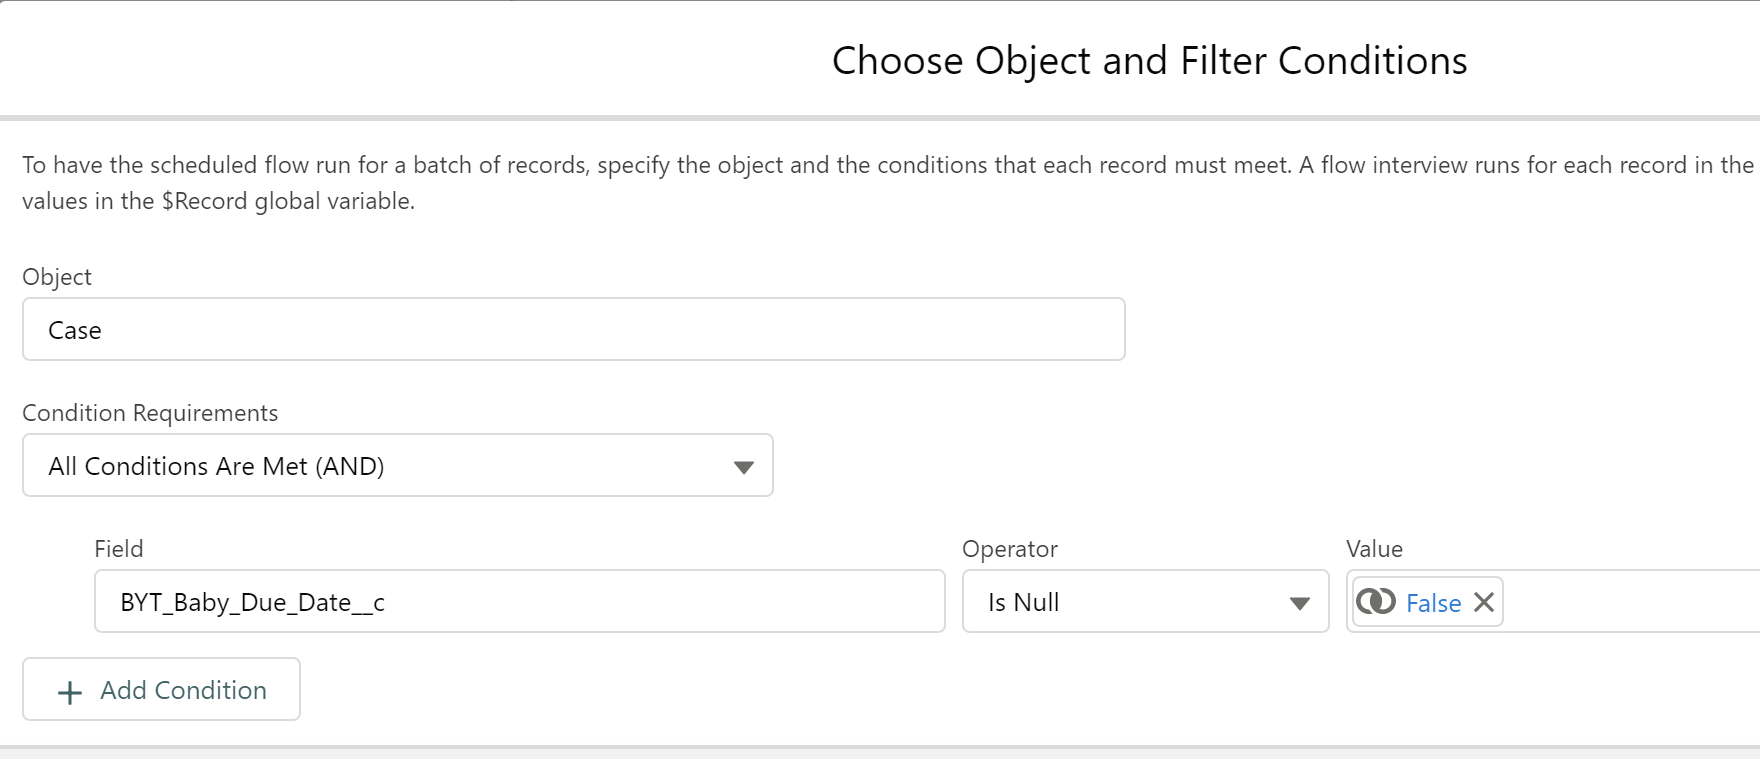 Choose Object and Filter Conditions: (Optional)